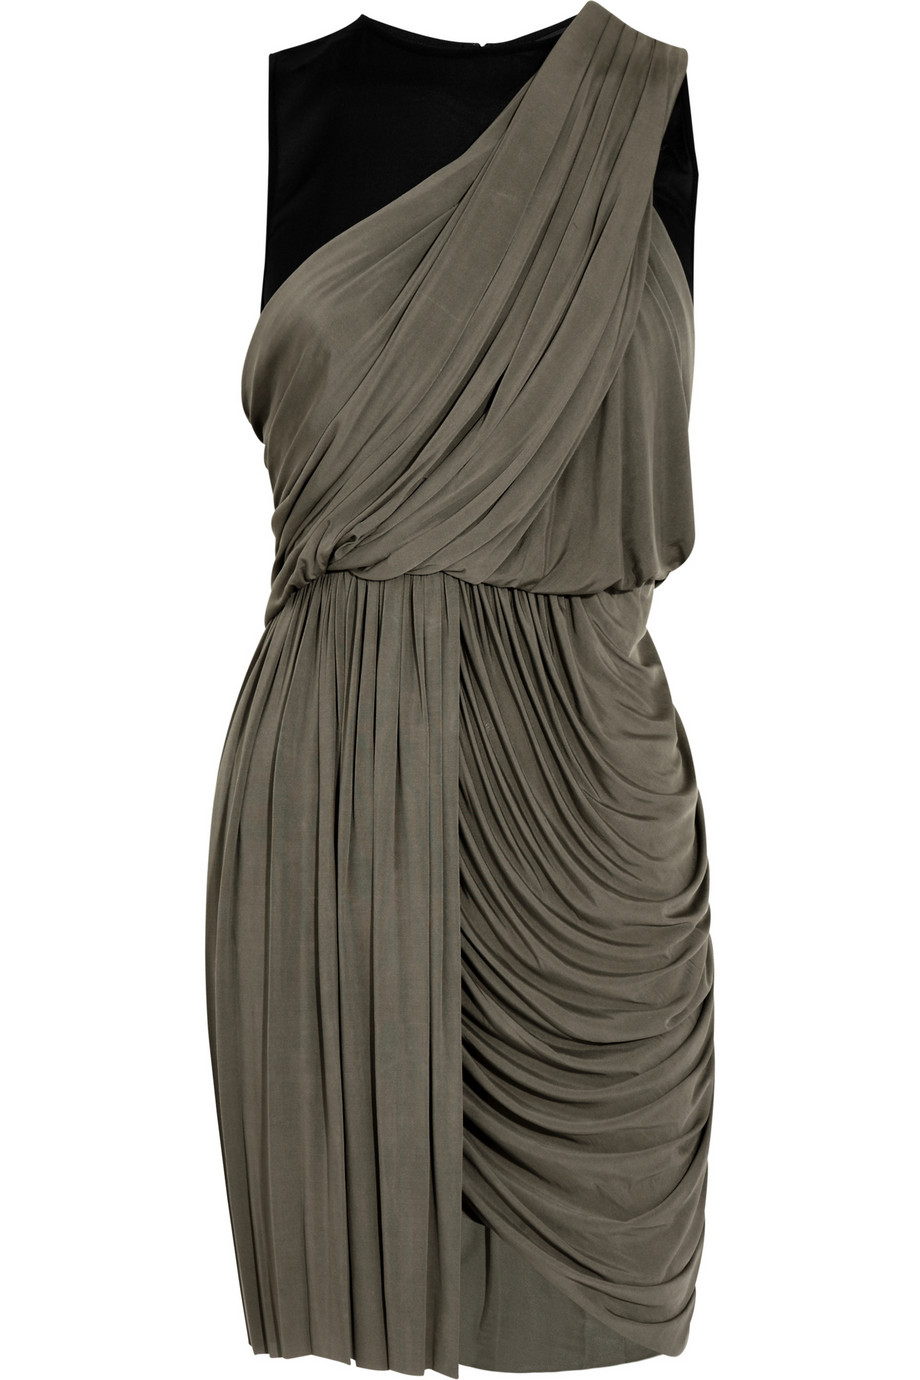 Alexander Wang Draped Jersey Dress In Anthracite Gray Lyst